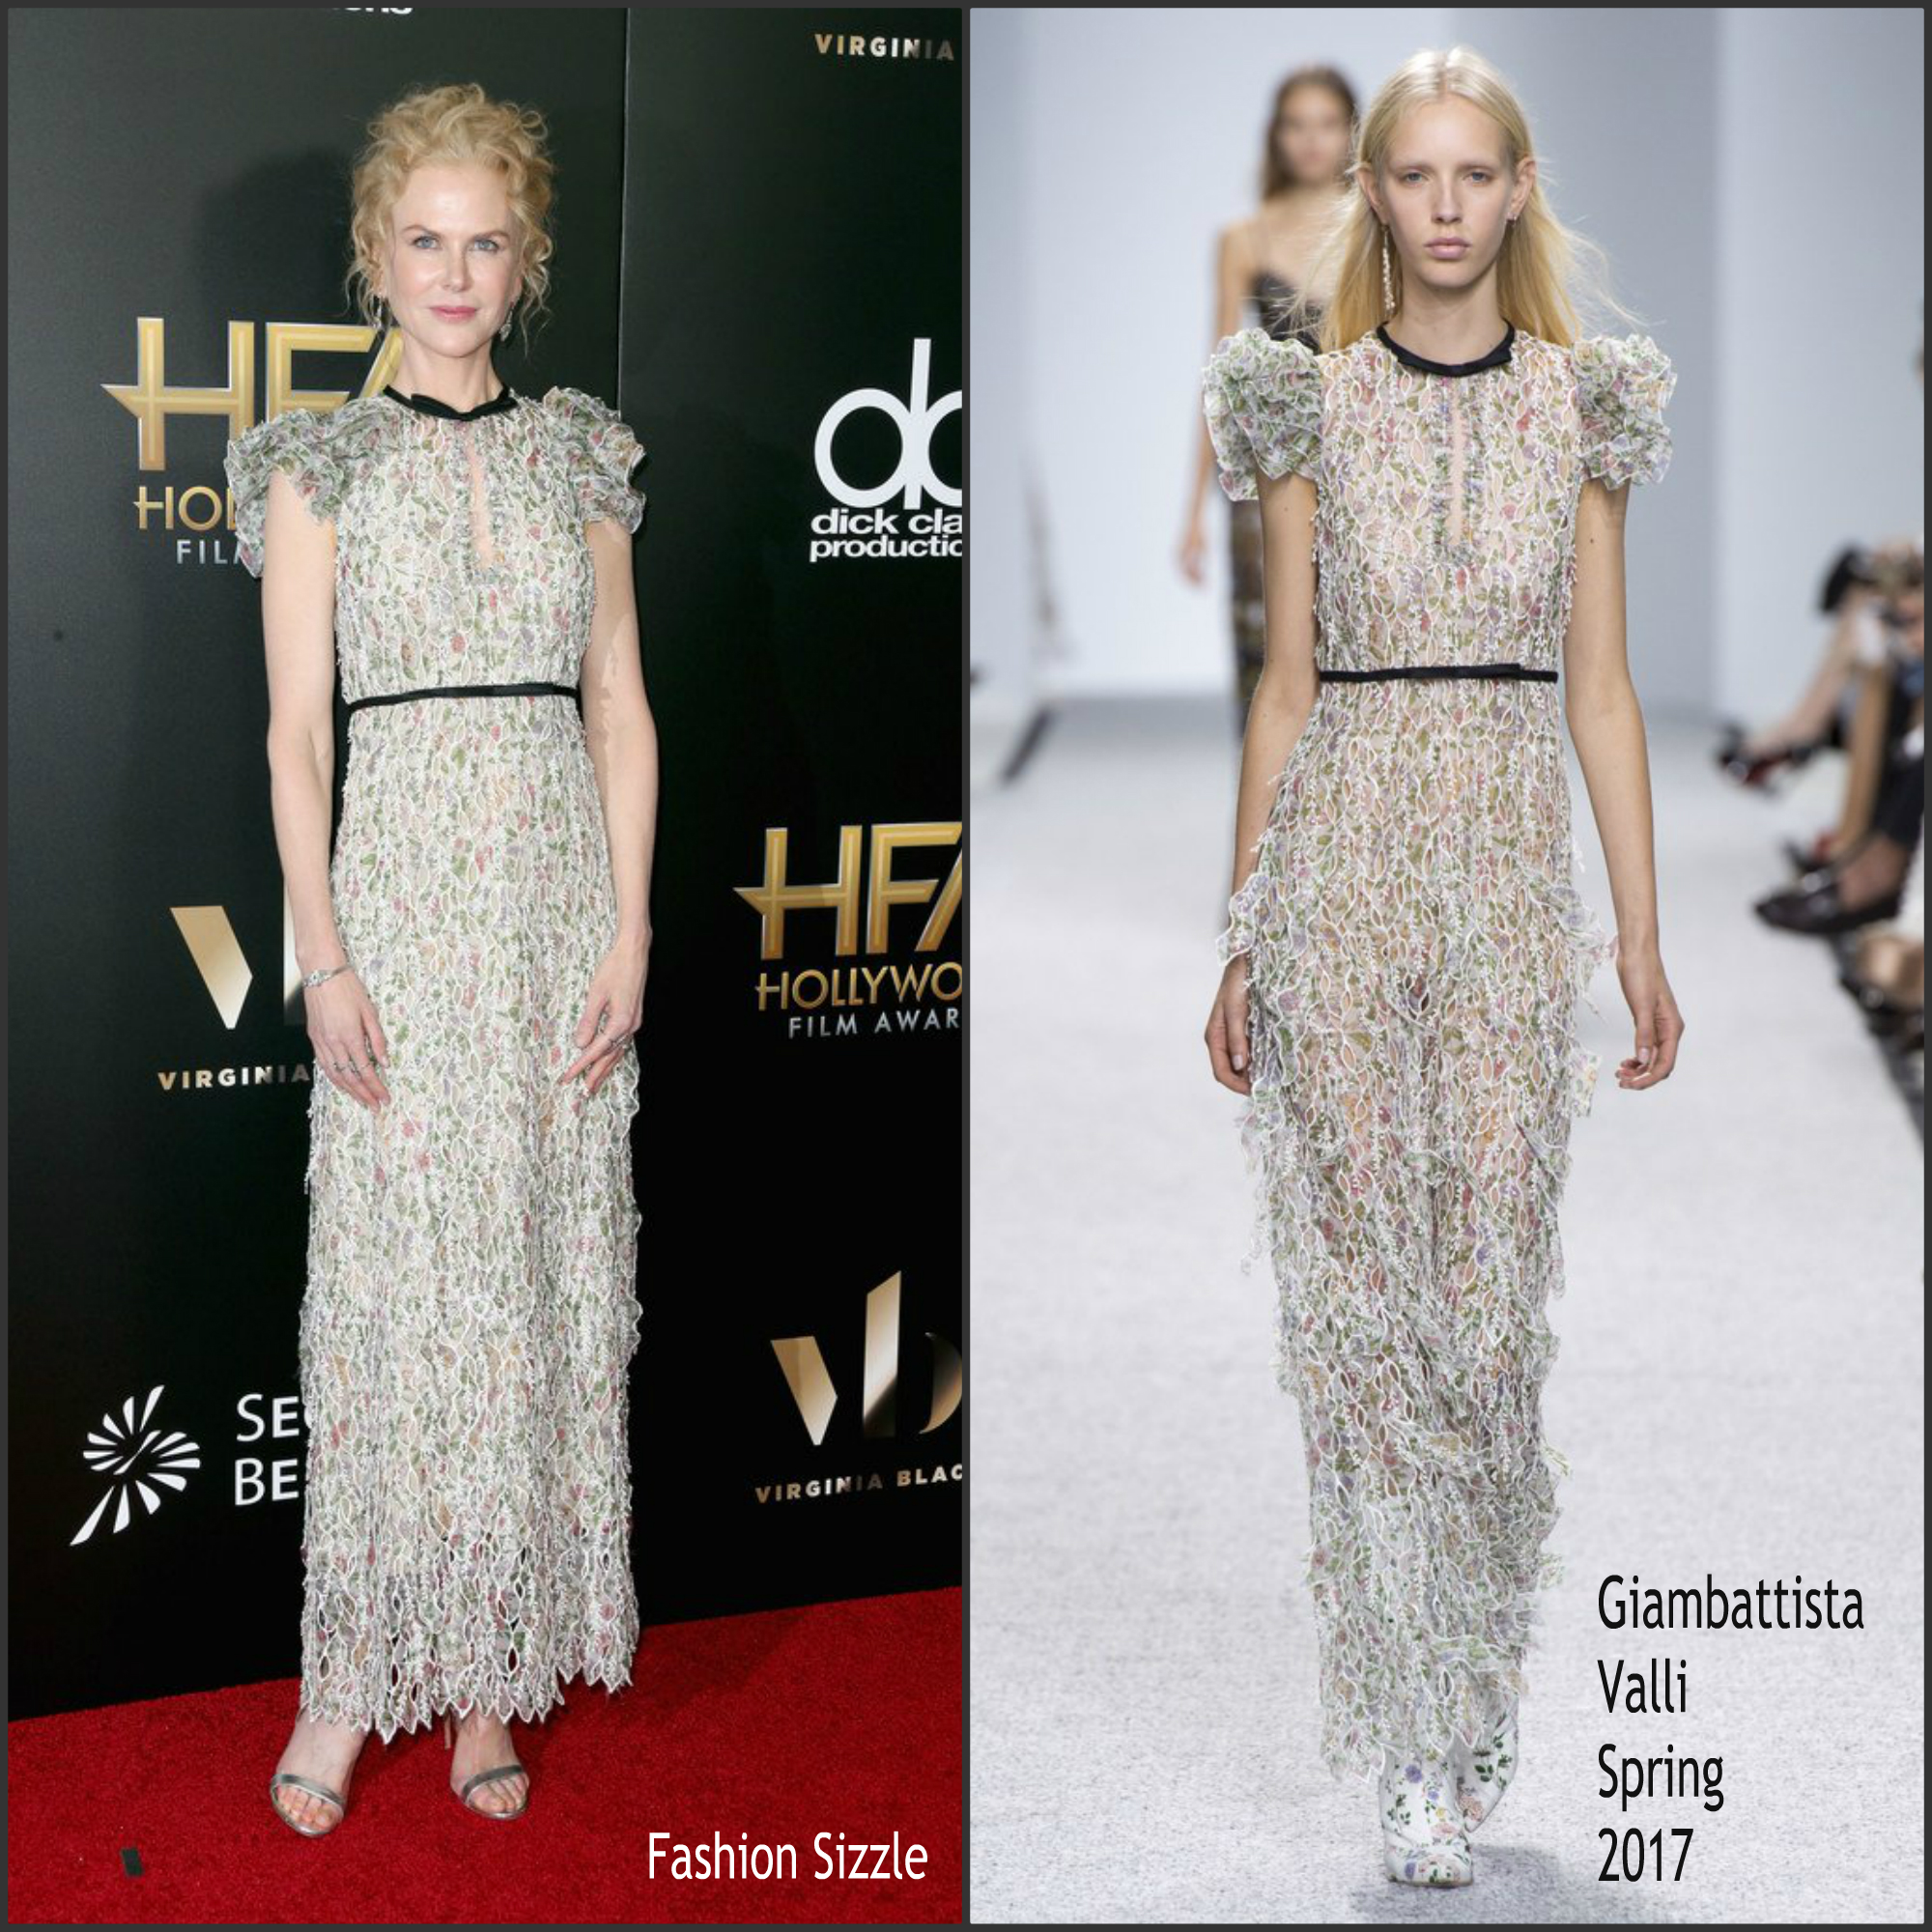 nicole-kidman-in-giambattista-valli-at-hollywood-film-awards